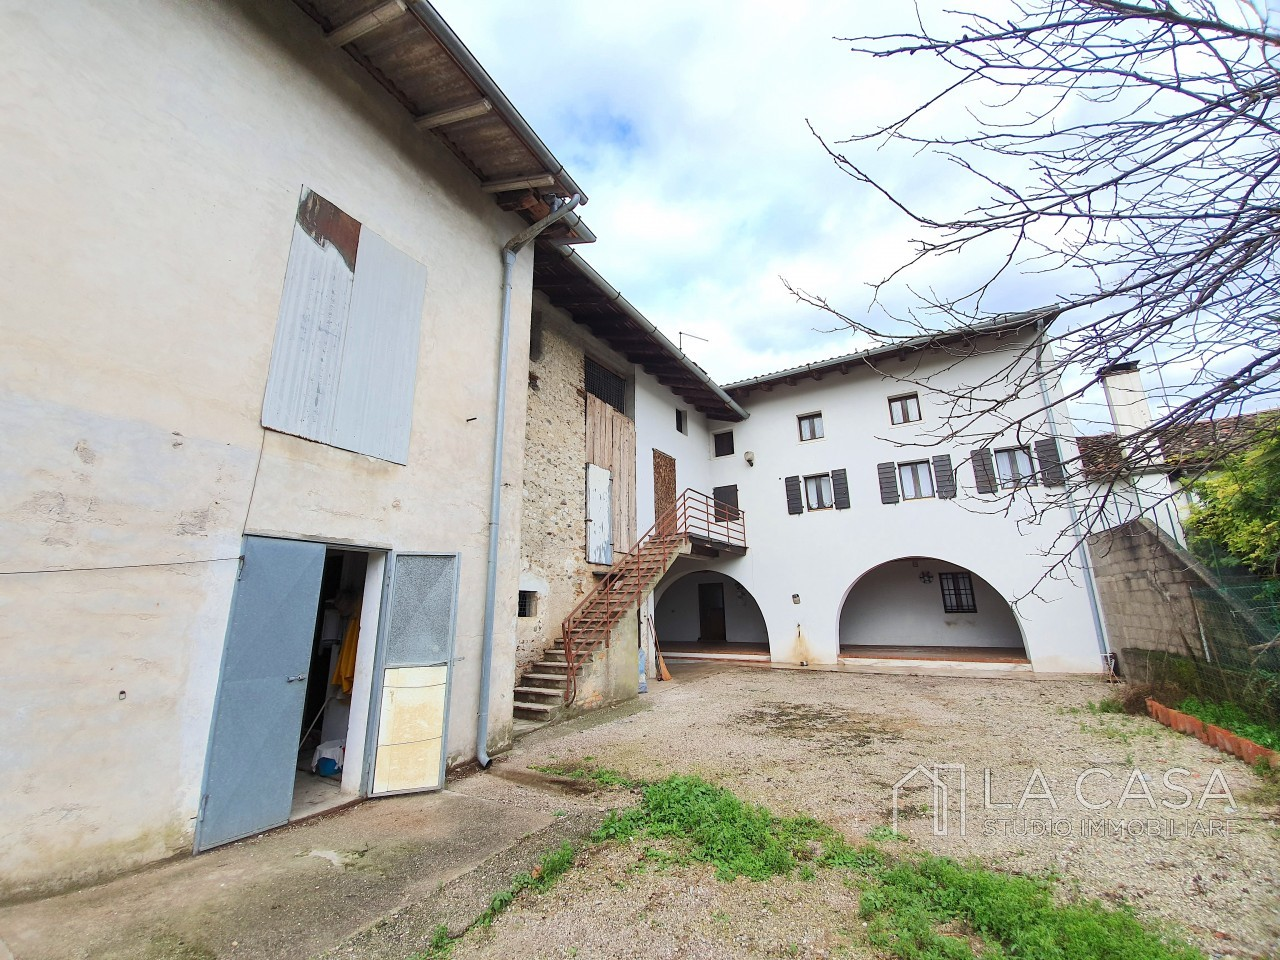 Casa indipendente in Linea - Rif.C6 https://images.gestionaleimmobiliare.it/foto/annunci/191125/2114313/1280x1280/001__20191116_110810_wmk_0.jpg